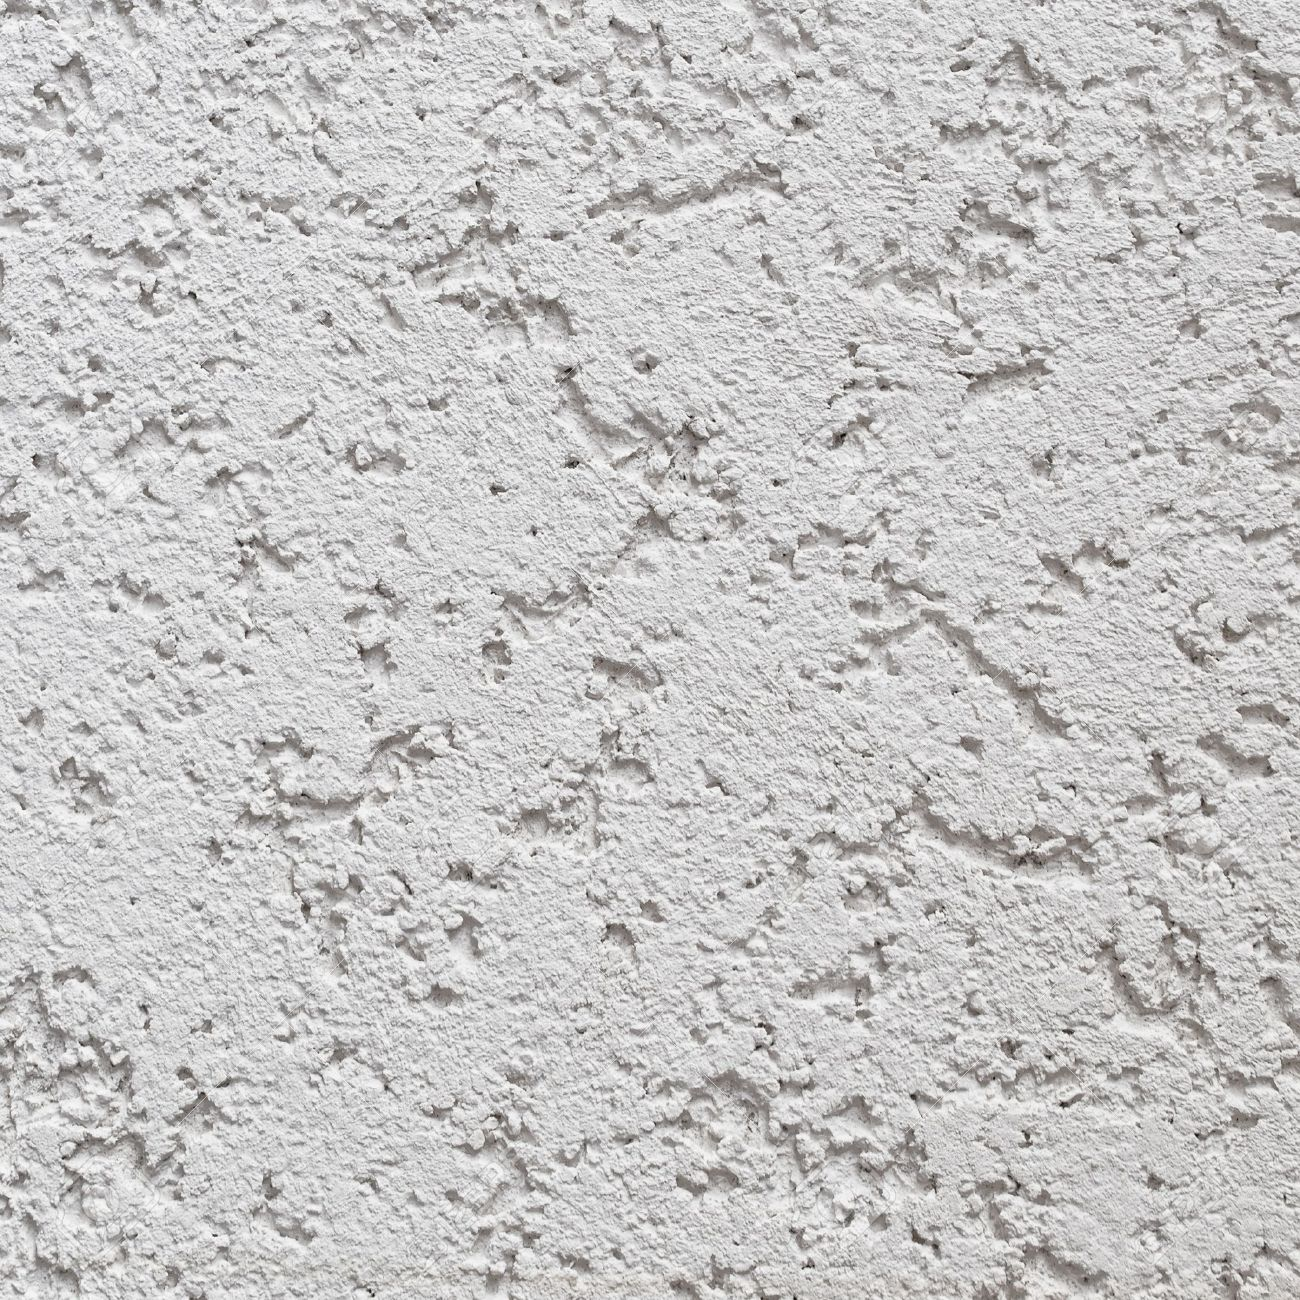 Light Grey Wall Stucco Texture Detailed Natural Gray Coarse Rustic Textured Background Concrete Copy